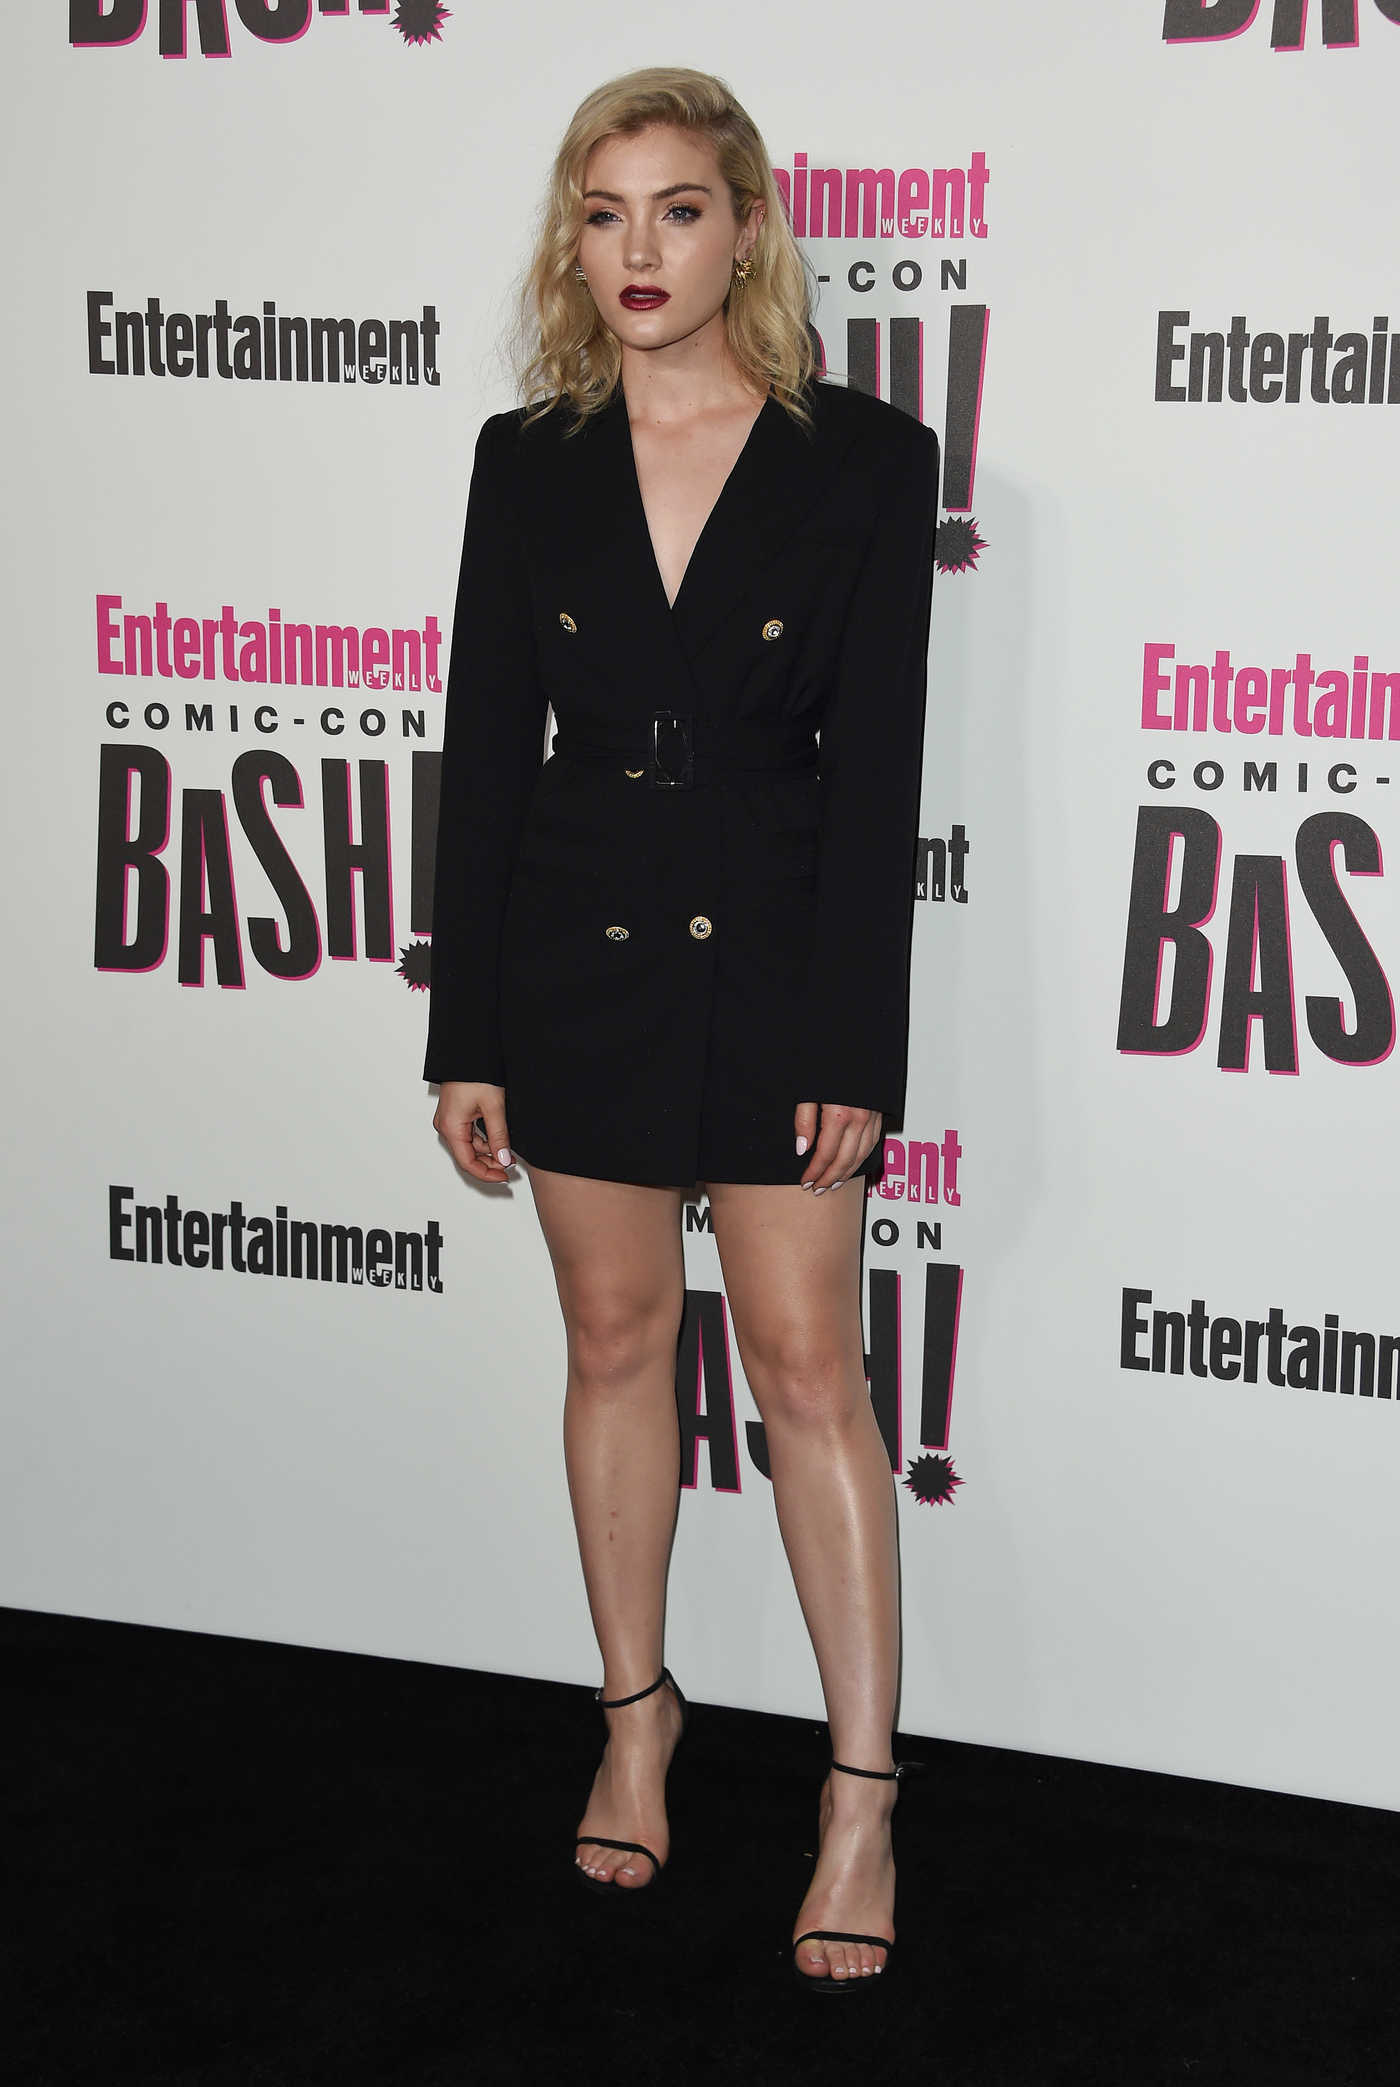 Skyler Samuels at the Entertainment Weekly's Comic-Con Bash in San Diego 07/21/2018